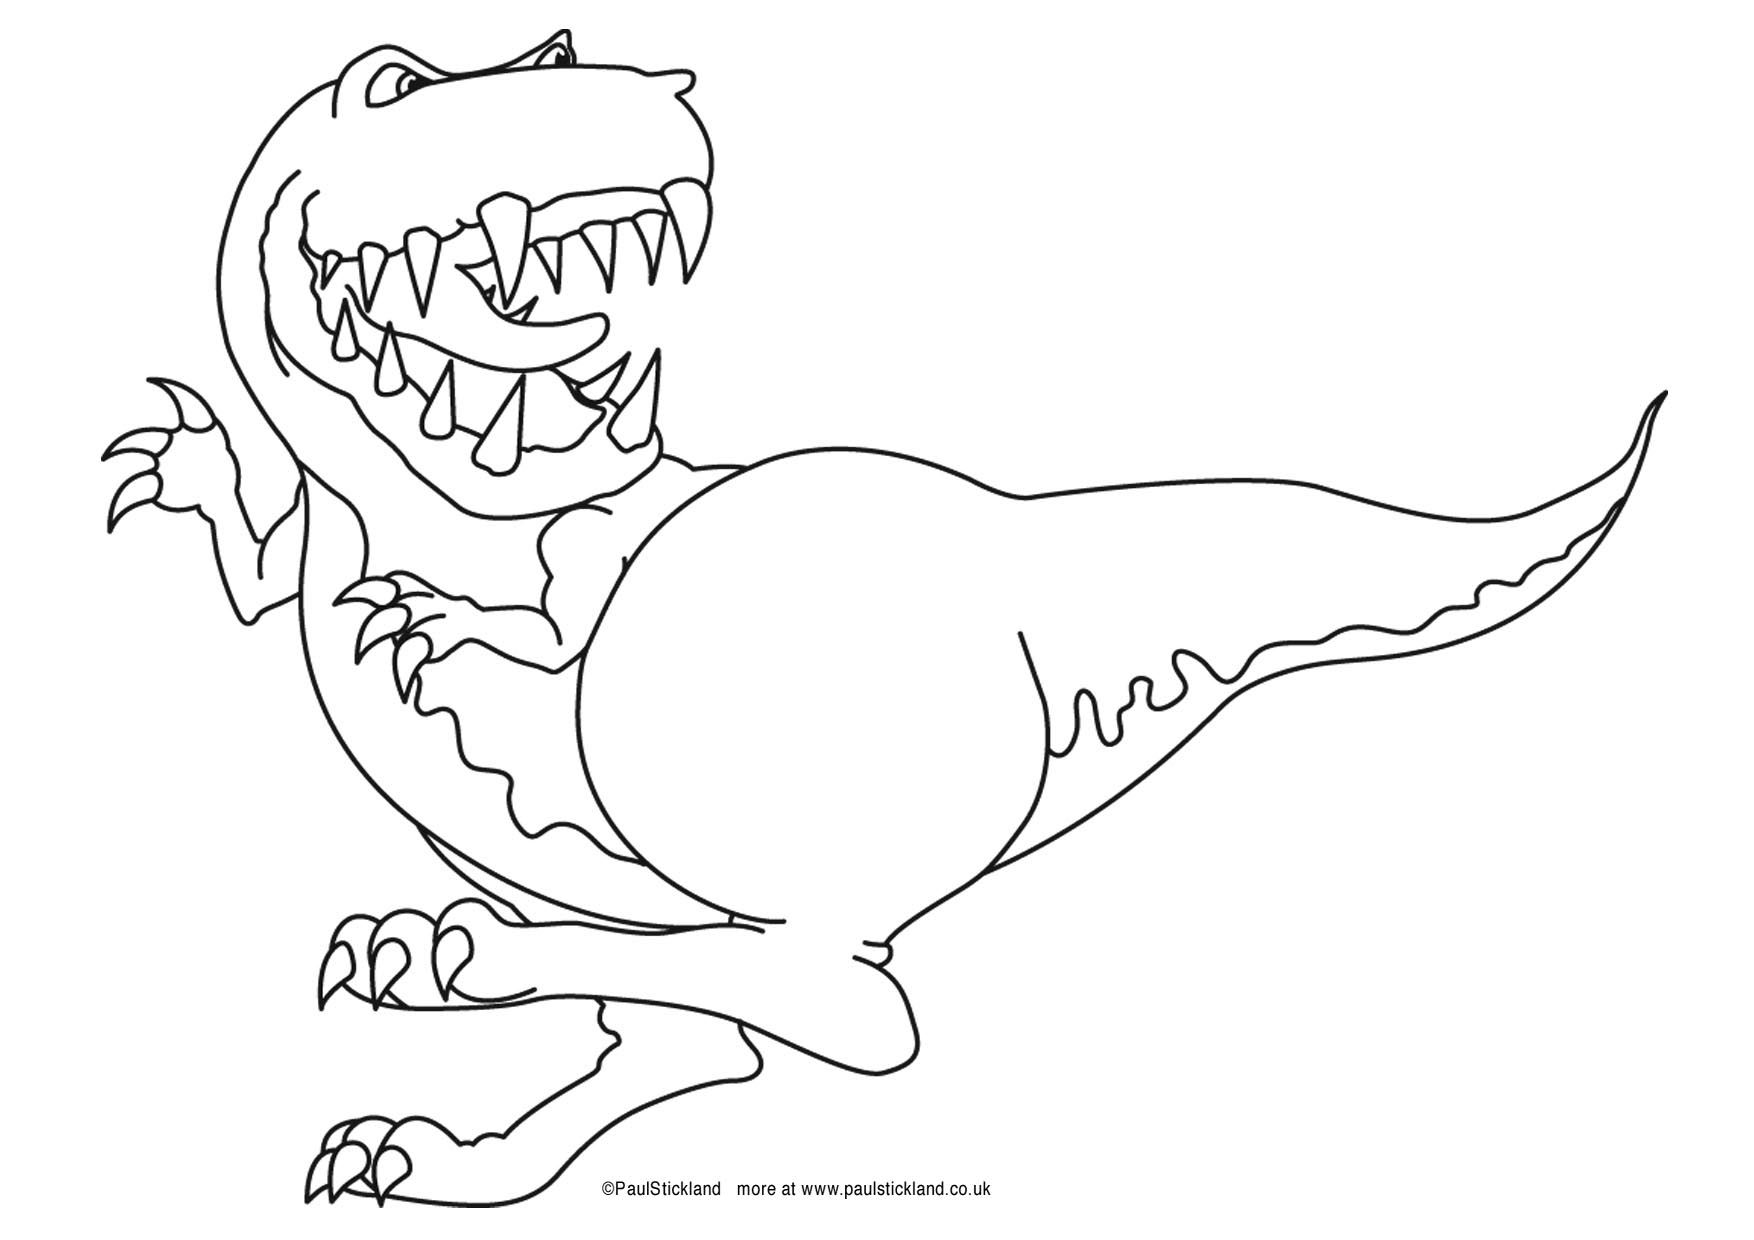 Centrosaurus Dinosaur Coloring Pages For Kids Printable Free